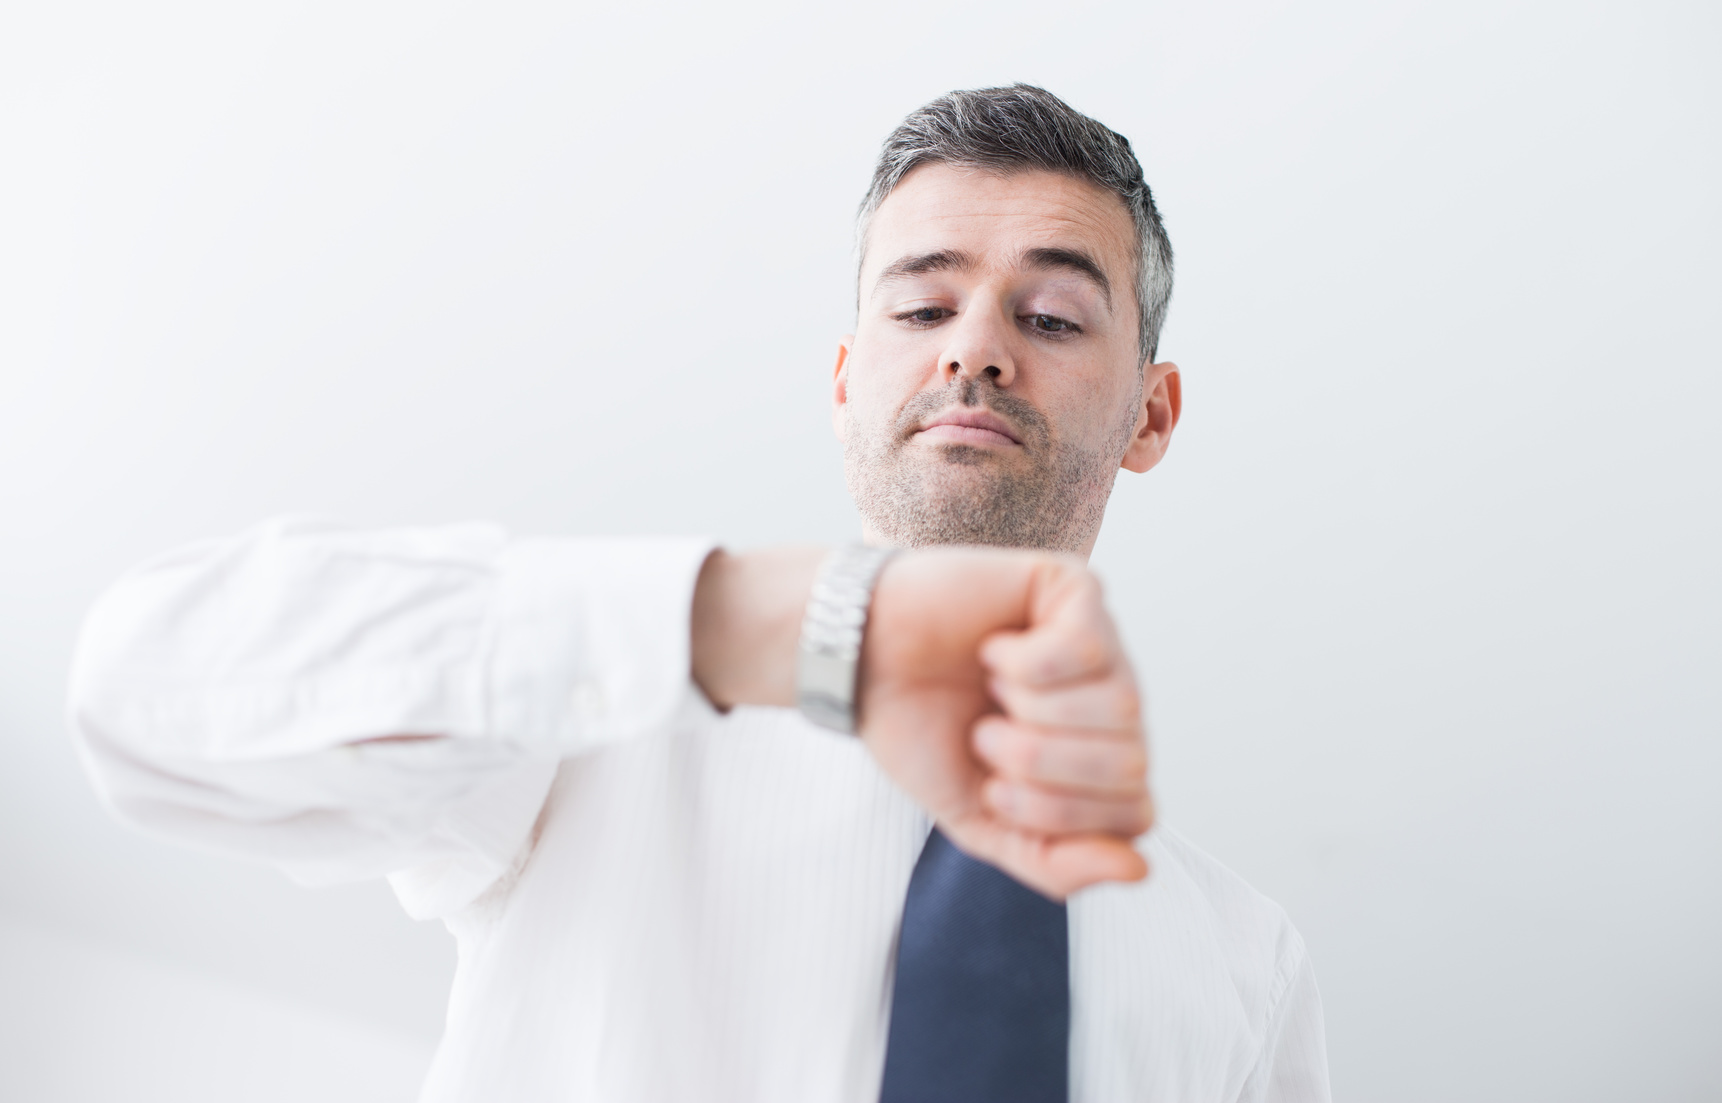 Confident businessman checking the time on his watch, efficiency and planning concept